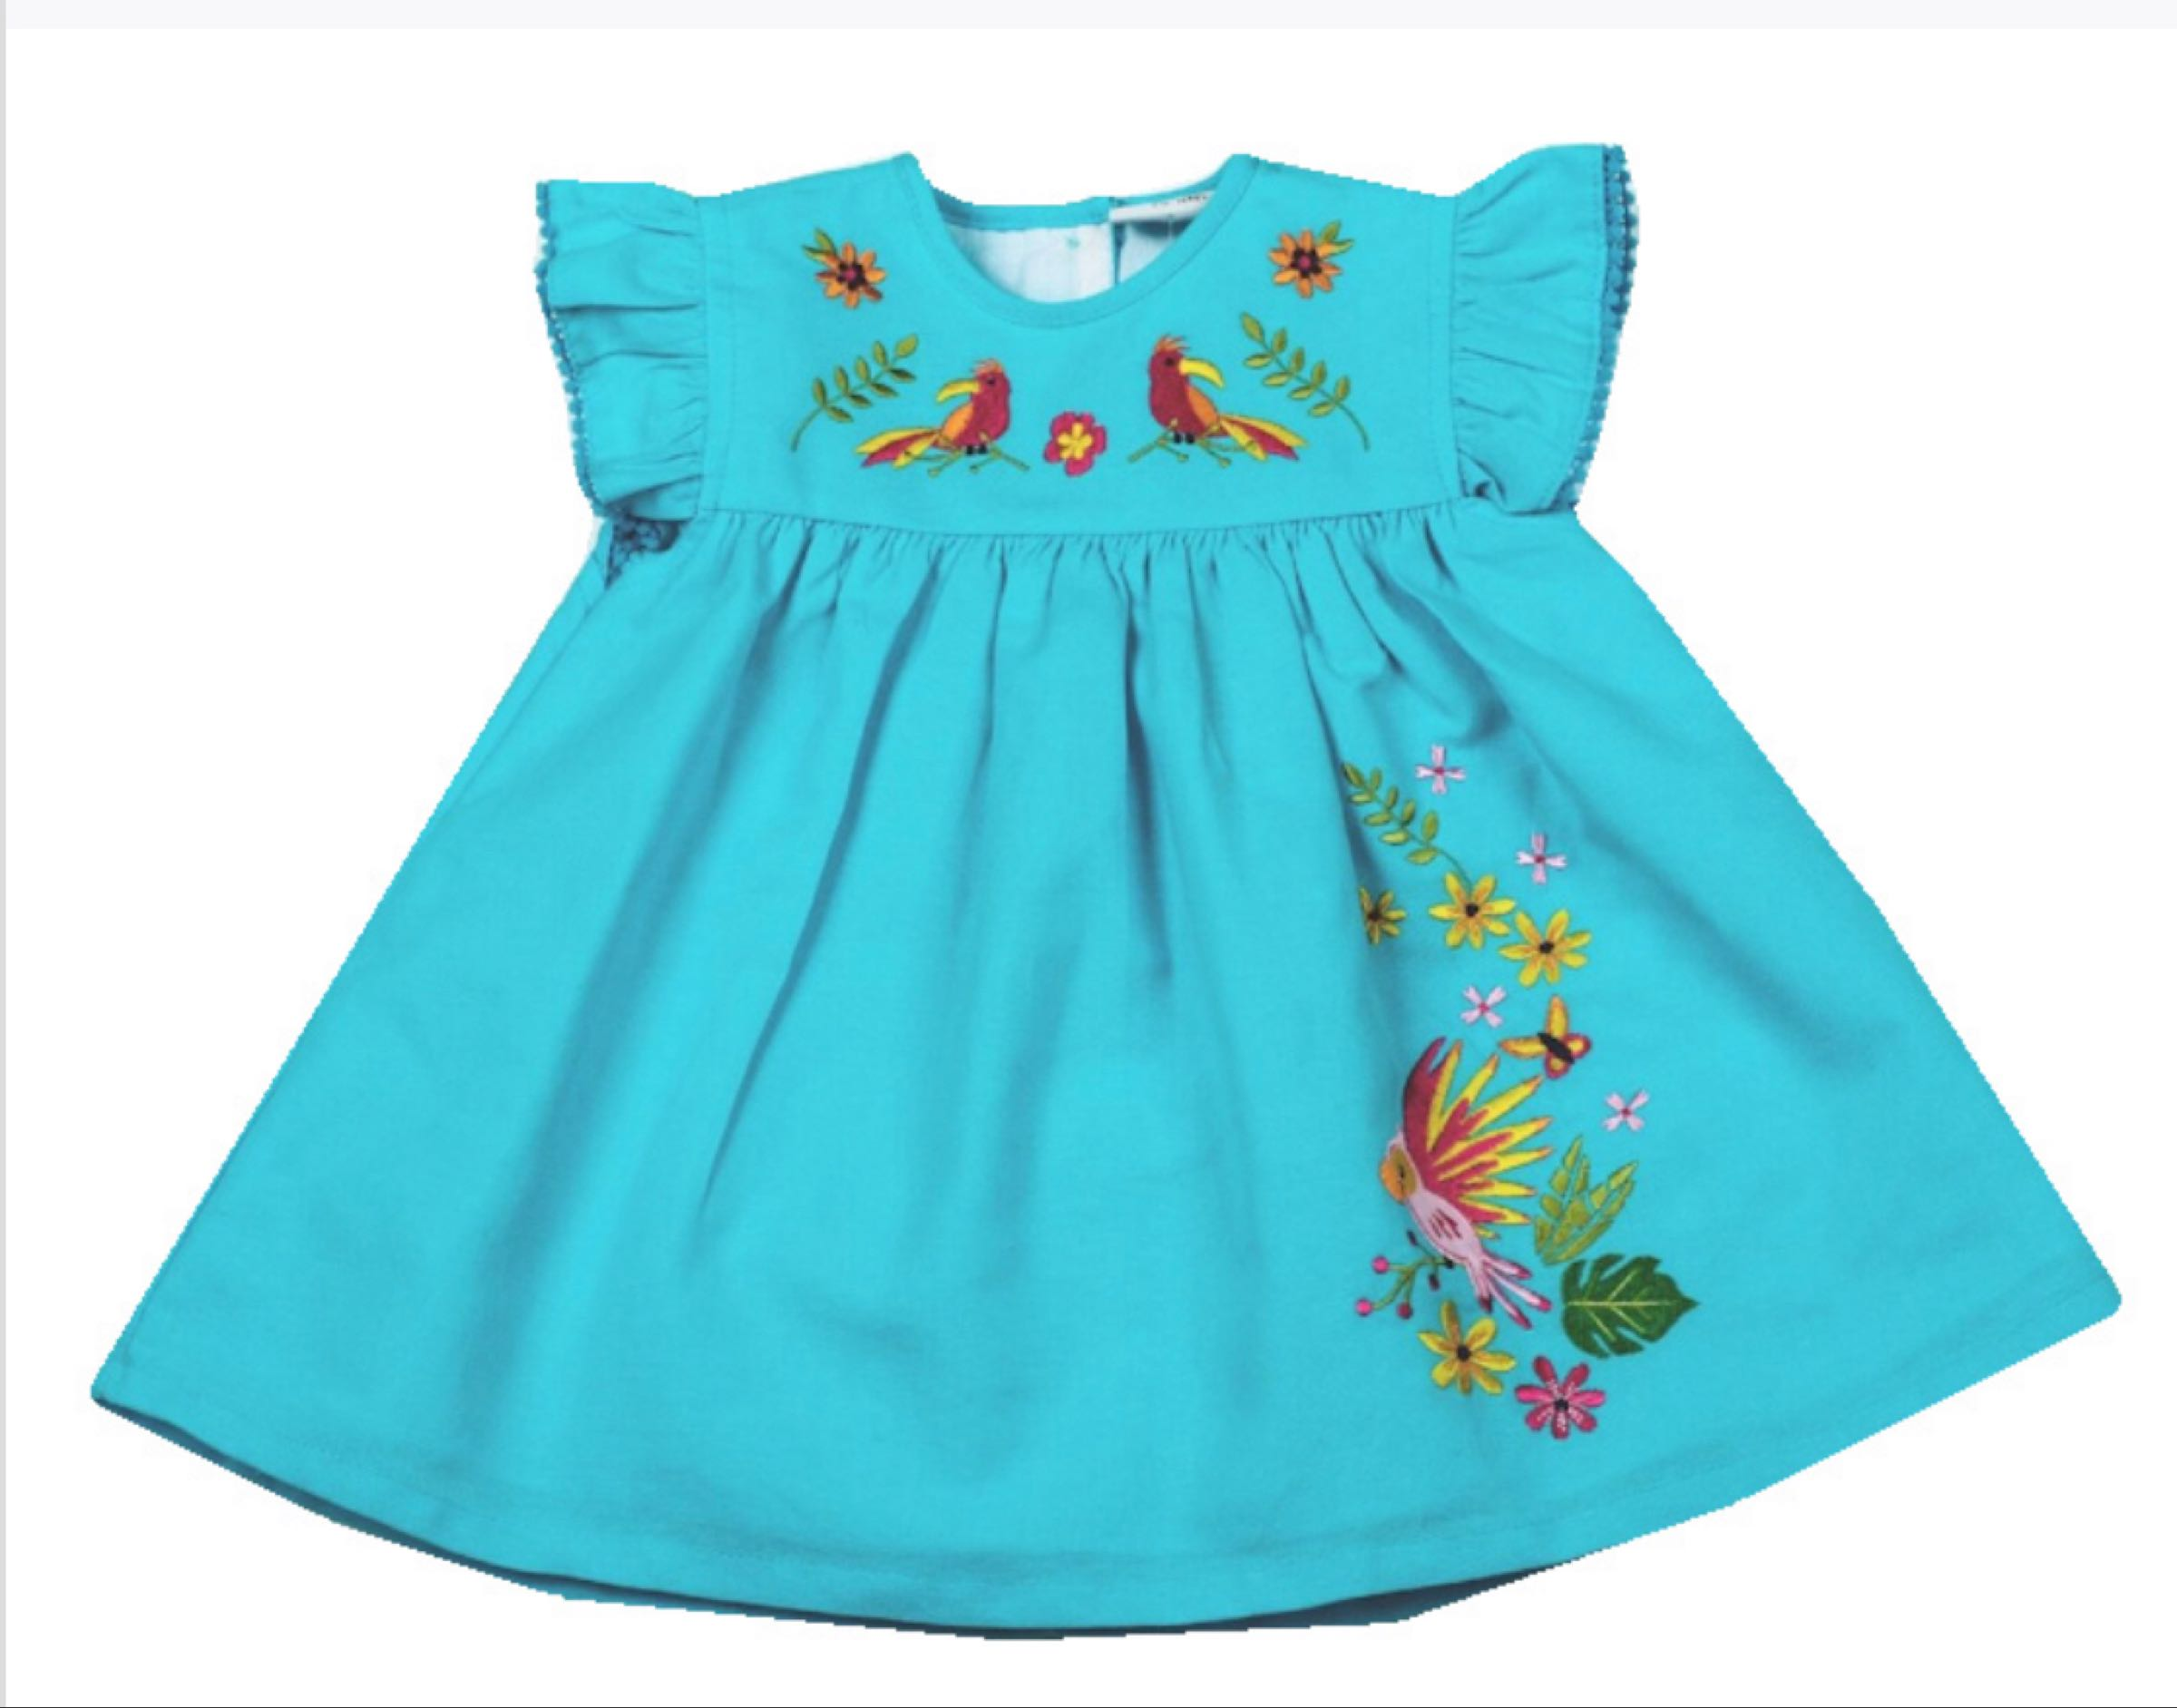 Embroidered Parrot Dress